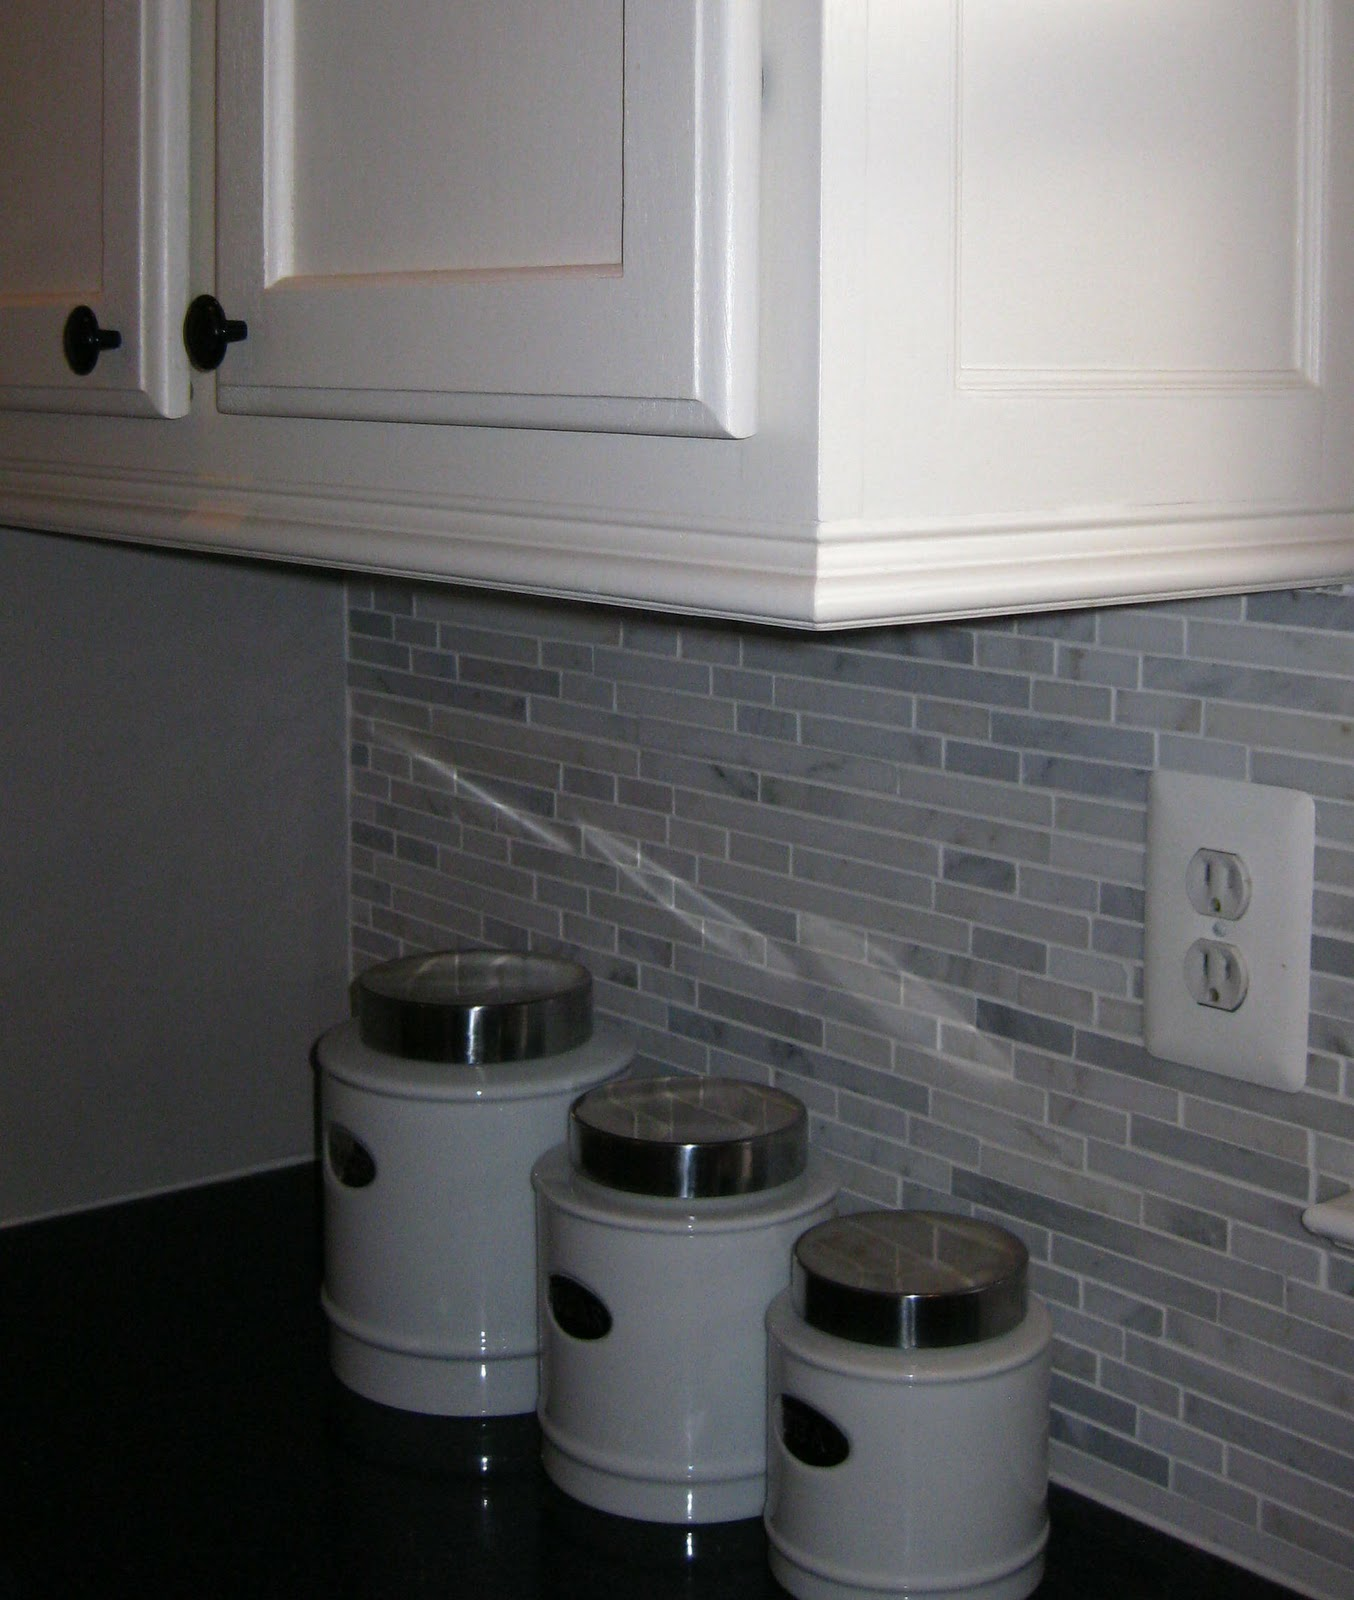 Light Rail Cabinet Molding: Adding Moldings To Your Kitchen Cabinets